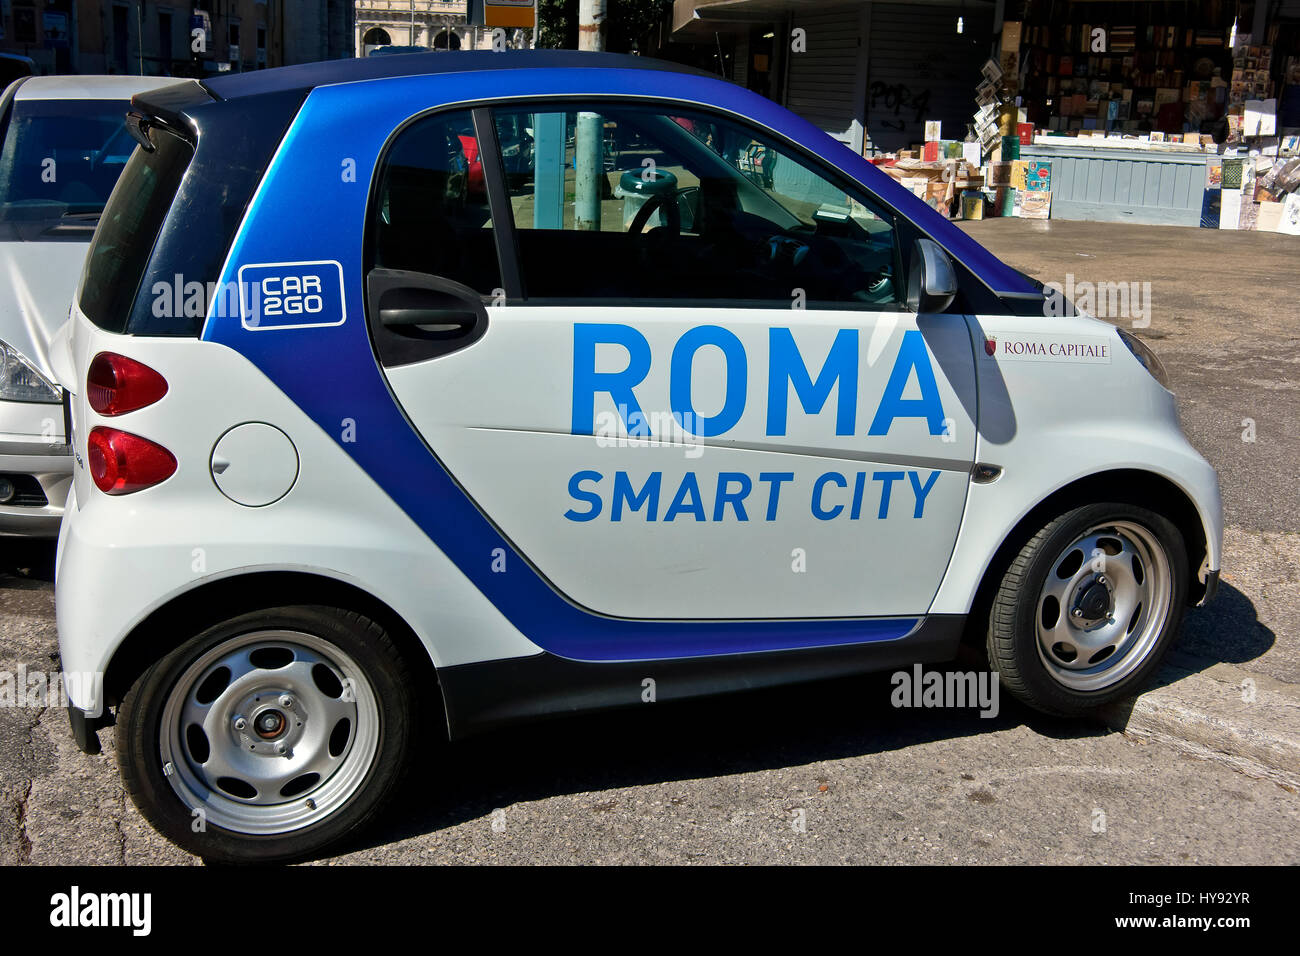 Roma smart city, Car2Go, car sharing, perpendicularly badly parked   in the street, side view. Environment transport. - Stock Image